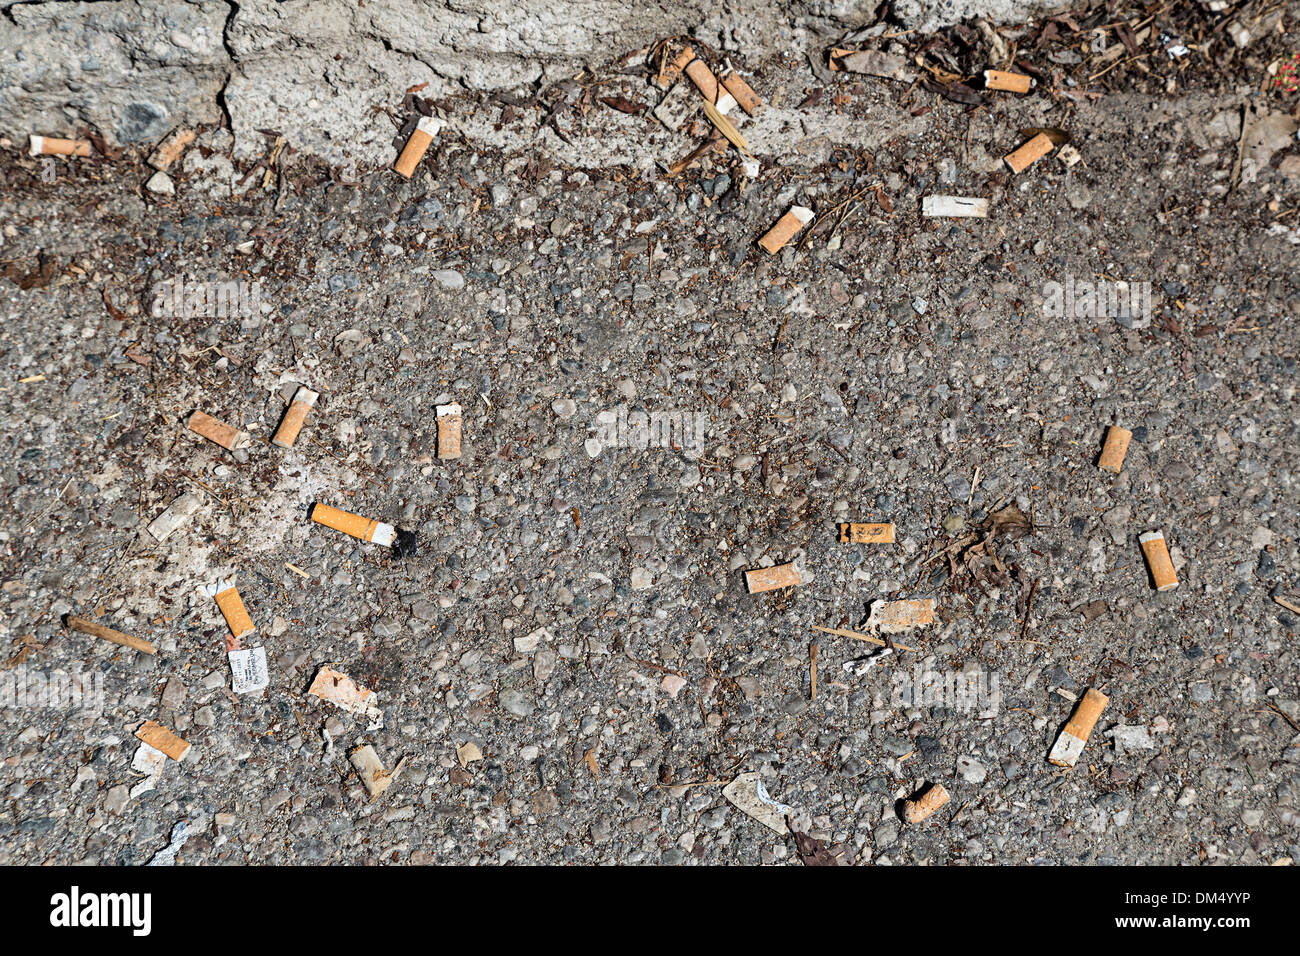 Discarded cigarette ends thrown away, Germany - Stock Image